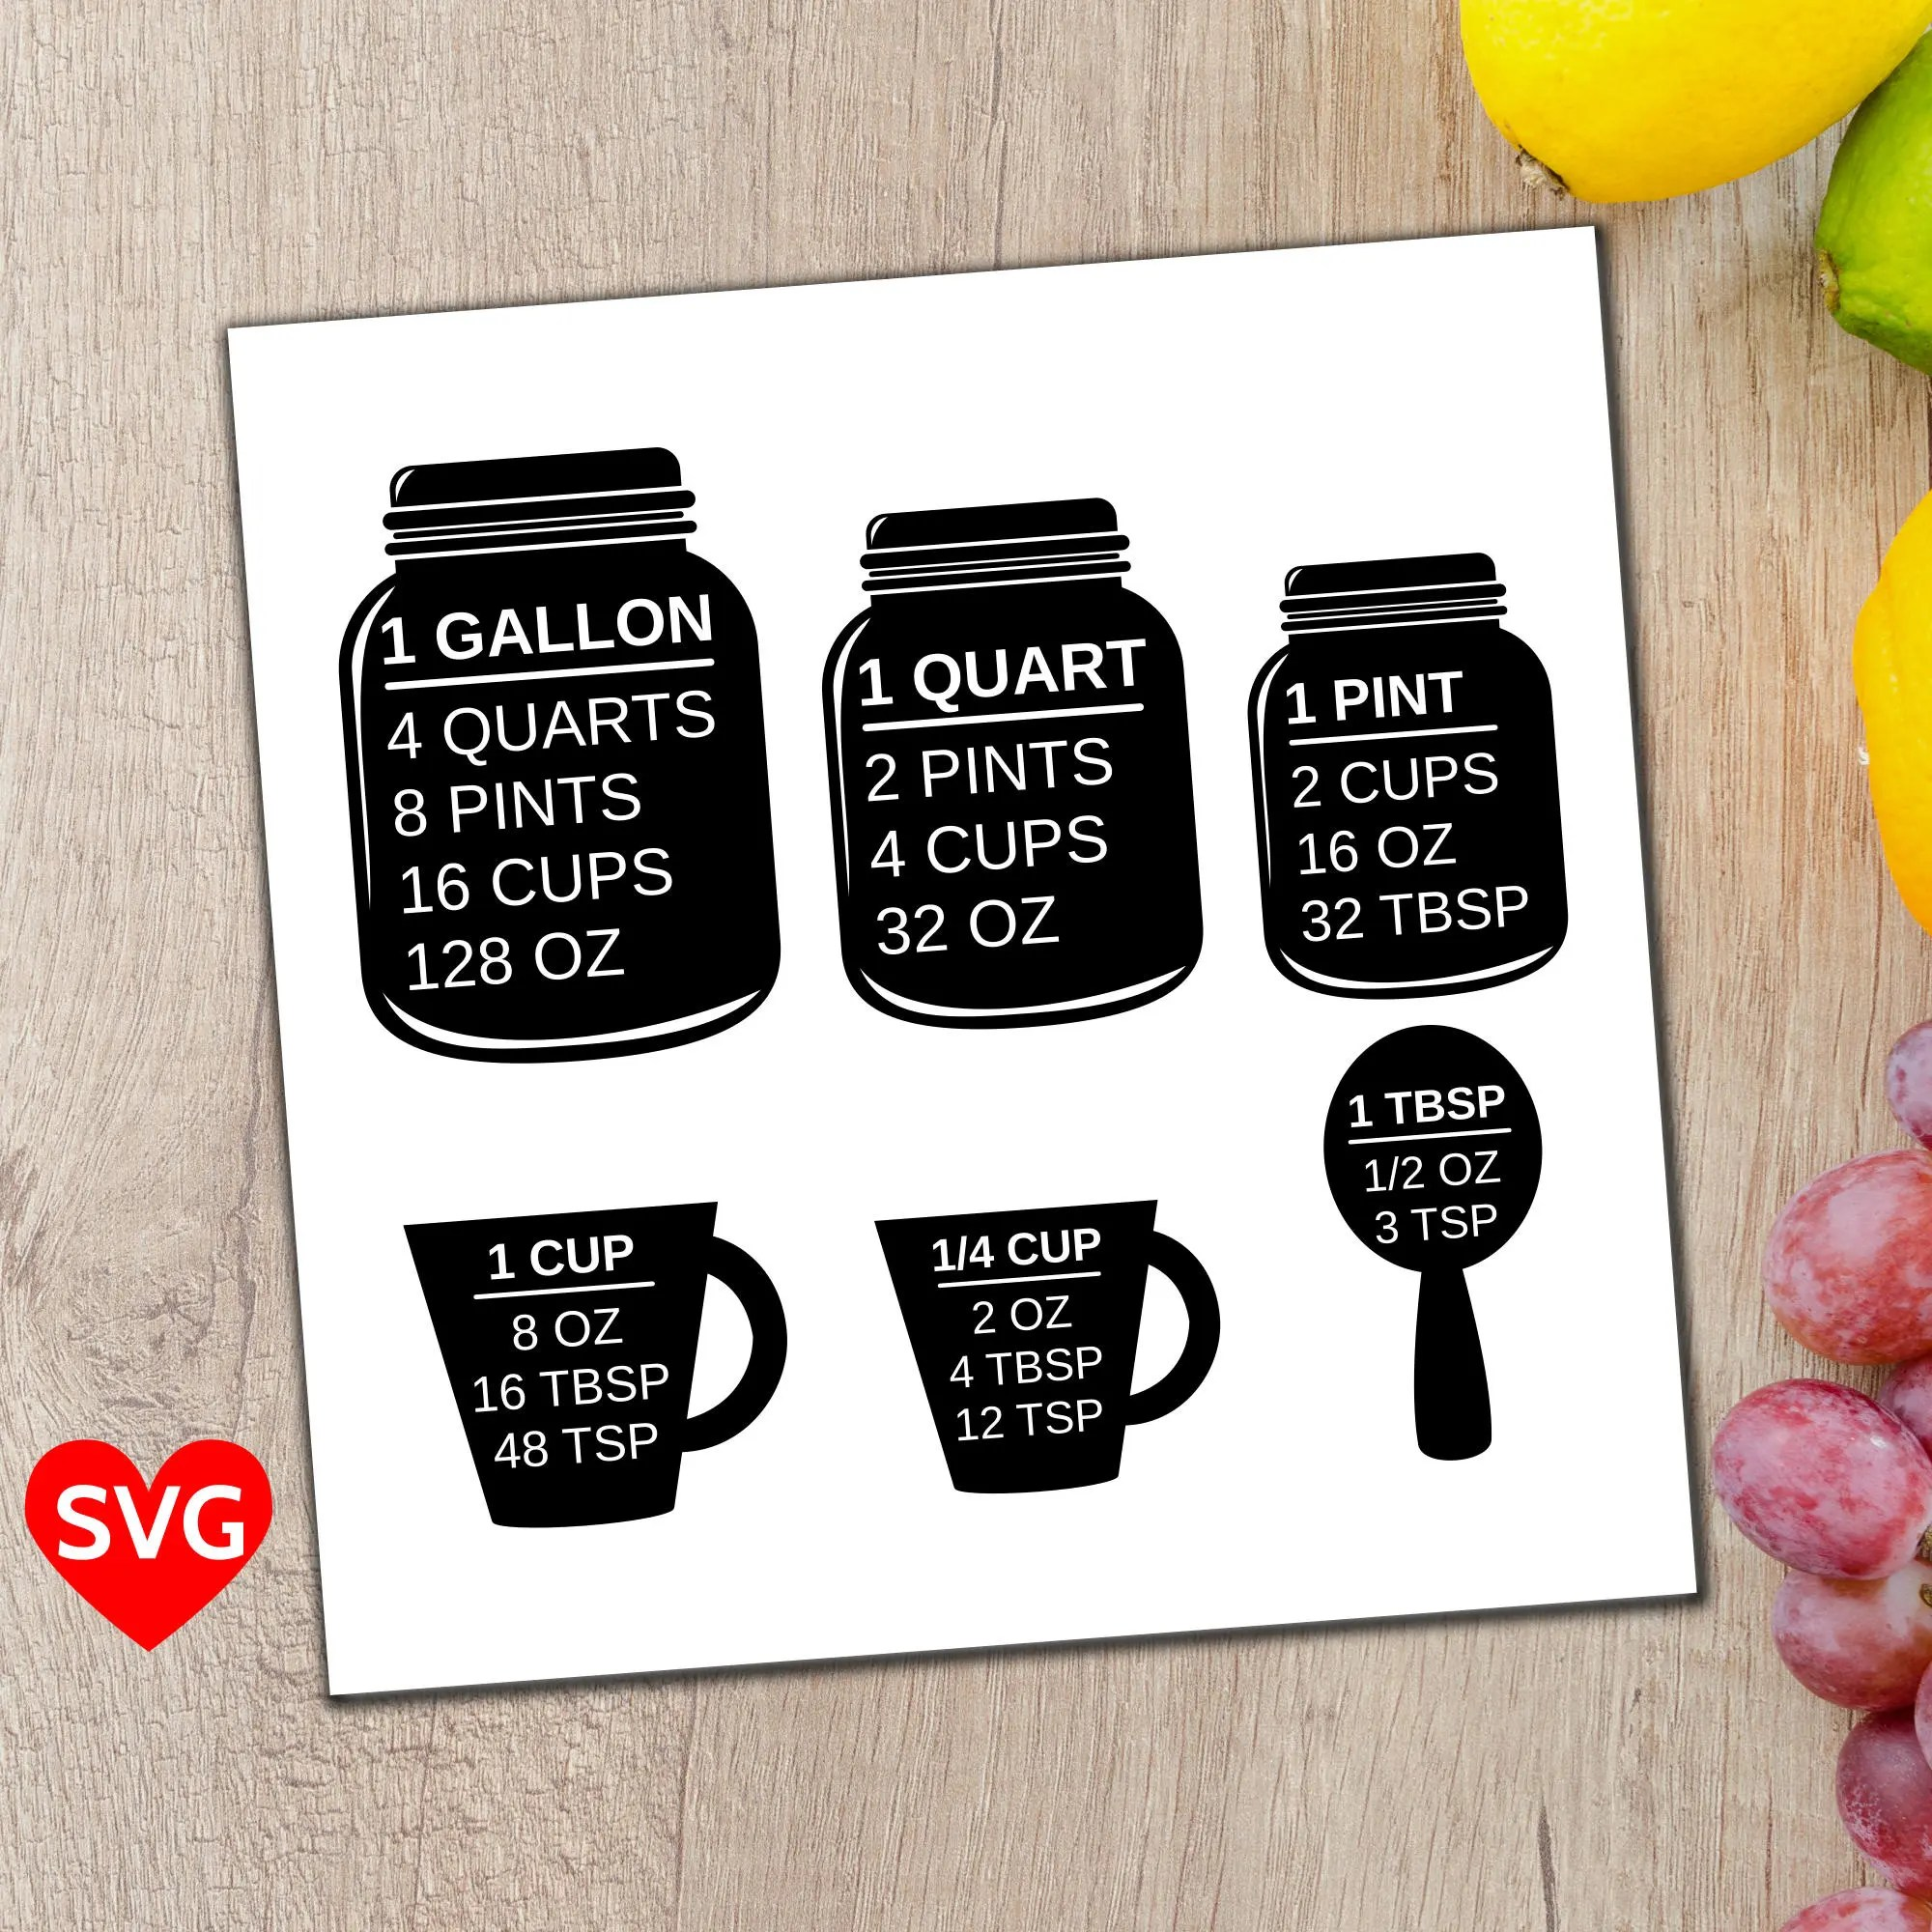 Measuring Cups Svg File A Printable Kitchen Conversion Chart Cheat Sheet To Easily Convert